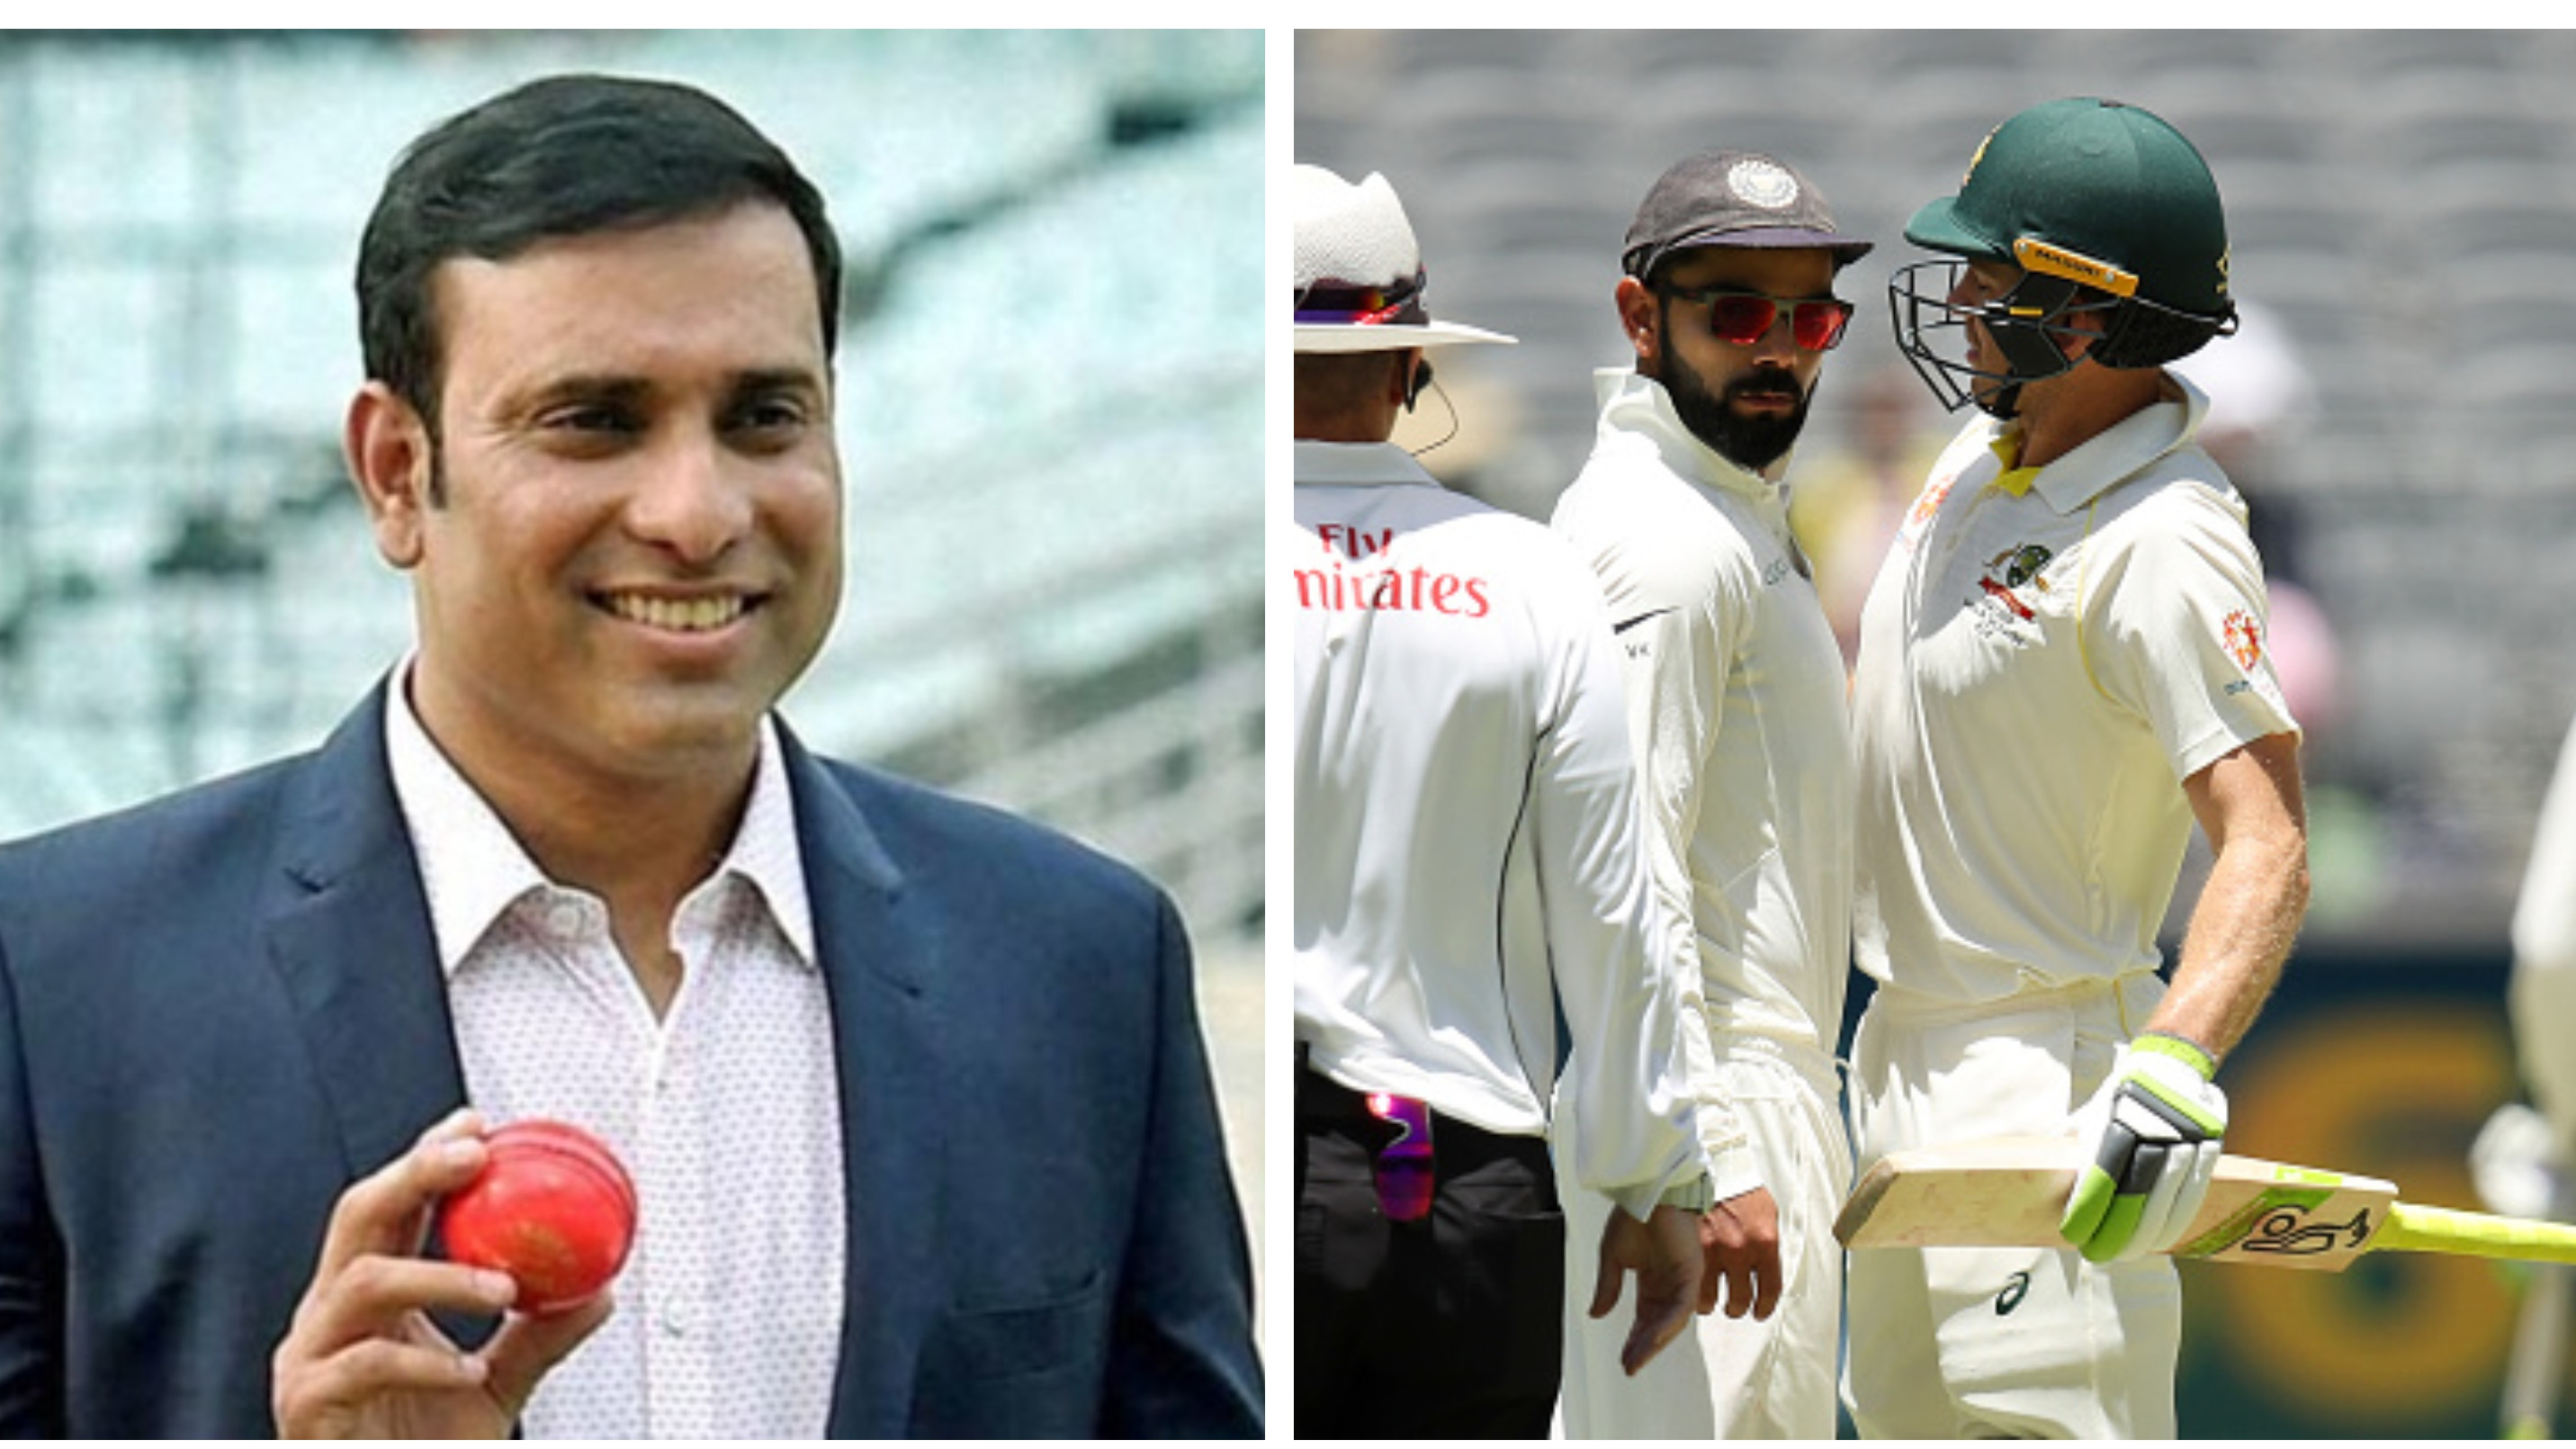 AUS v IND 2018-19: Have no issues with Virat's aggression, says VVS Laxman